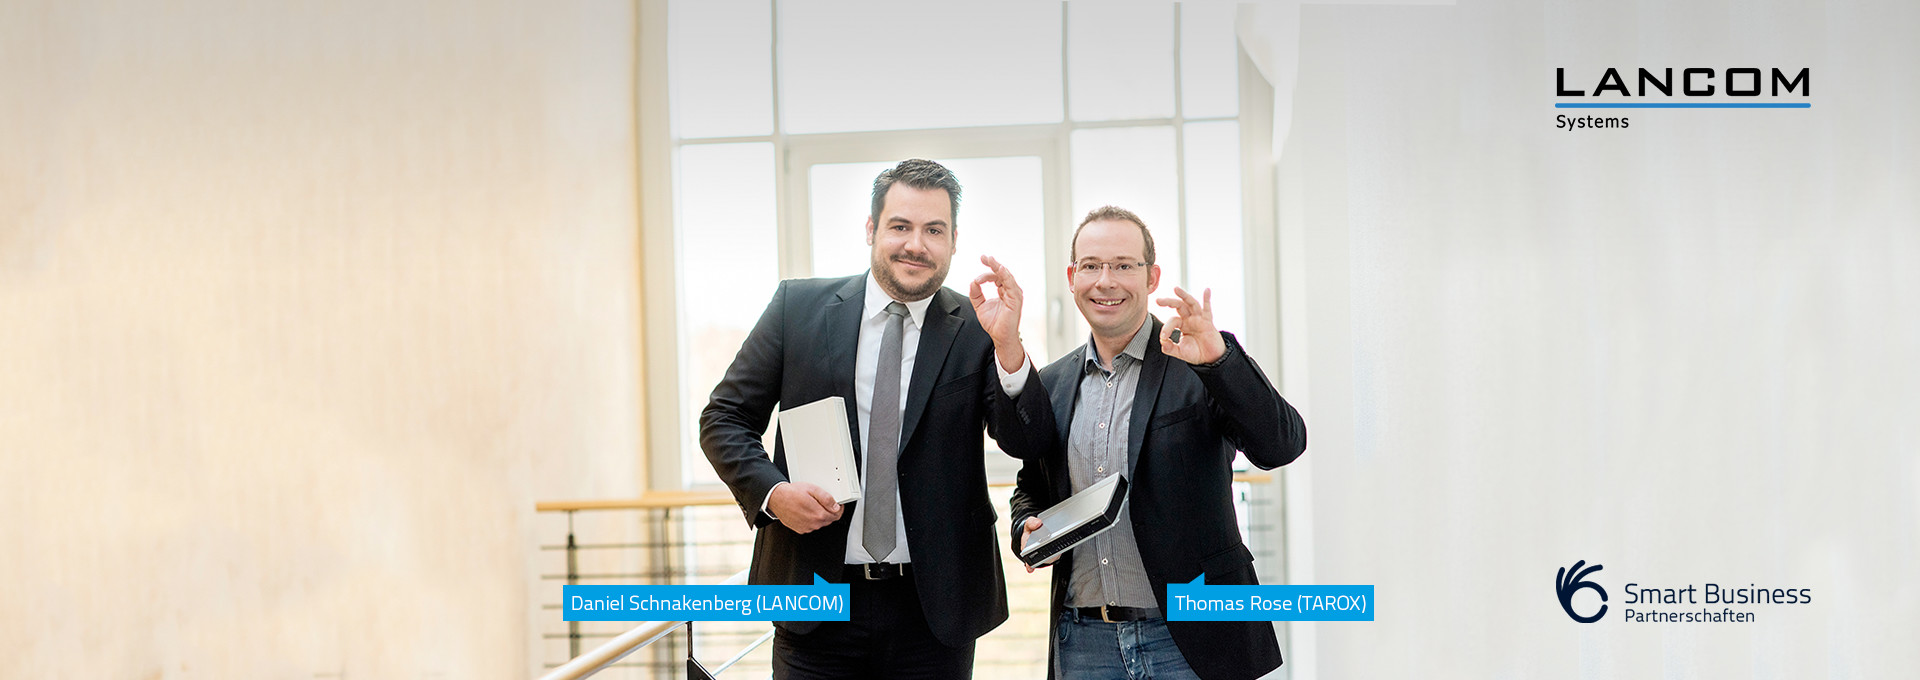 Lancom: Smart Business Partnerschaft